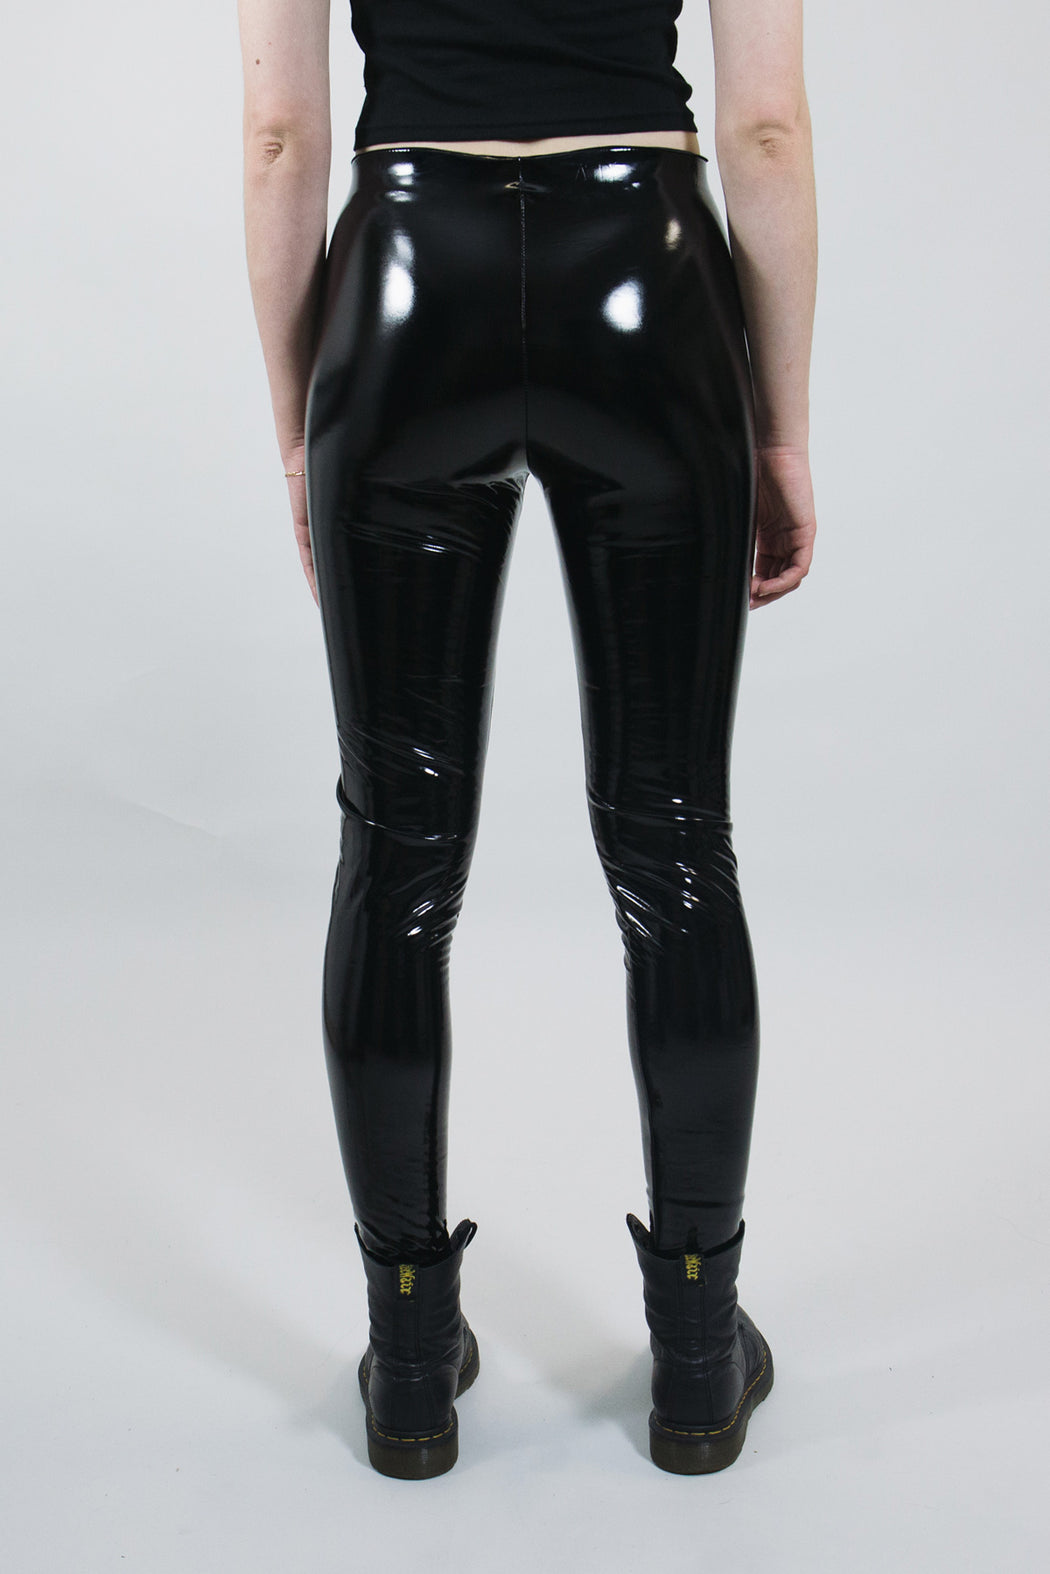 Ministry Vinyl Leggings